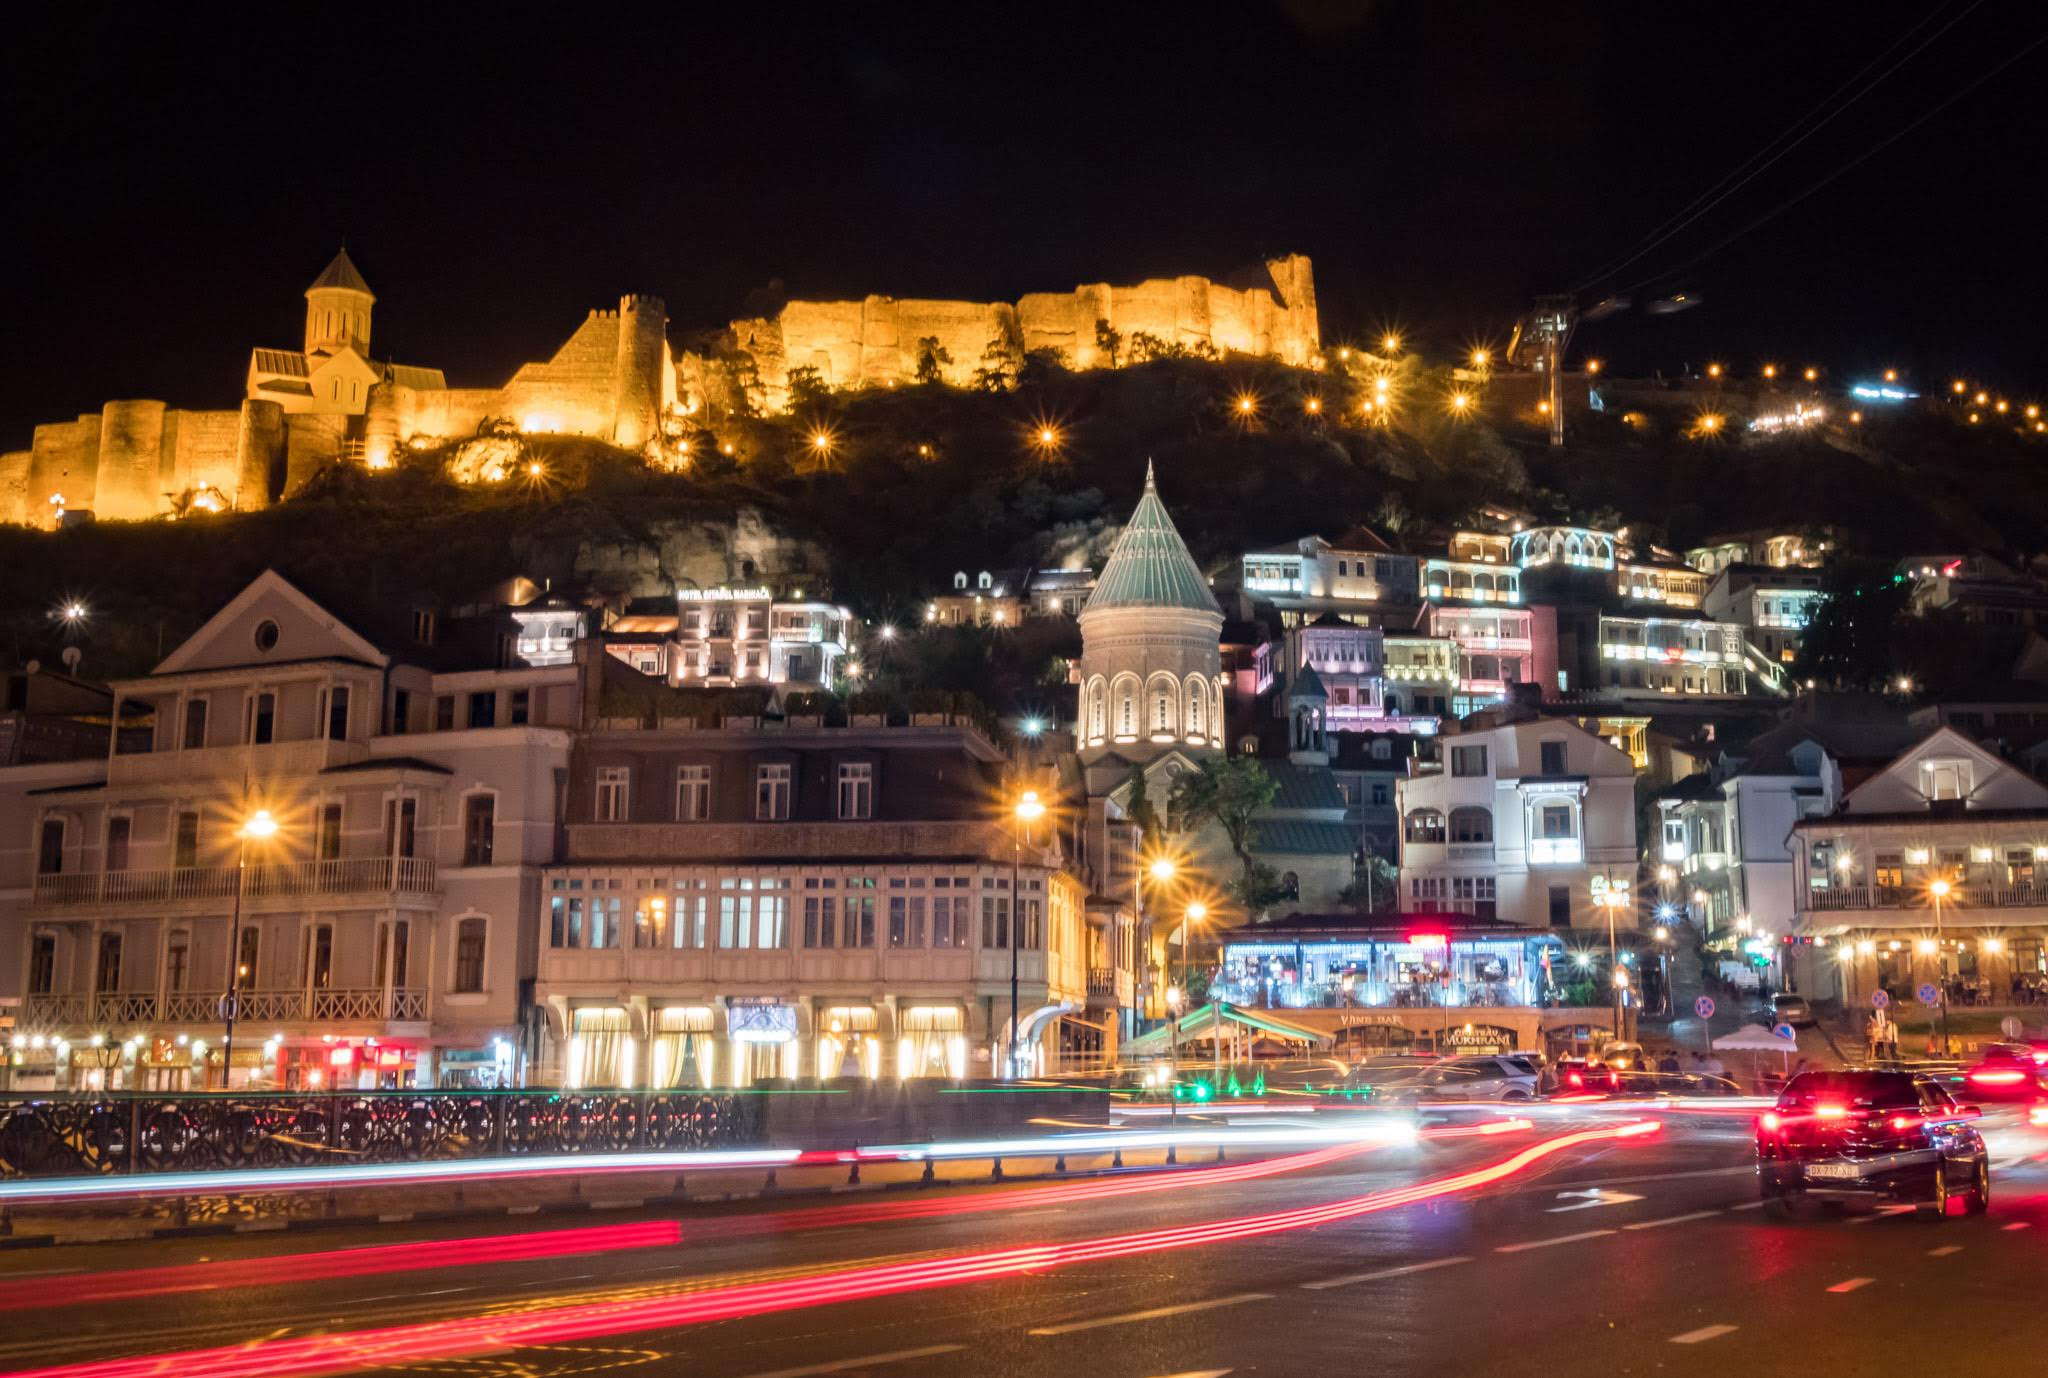 Things To Do in Tbilisi Map & Guide: 40+ Activities & Places to Visit in Tbilisi, Georgia